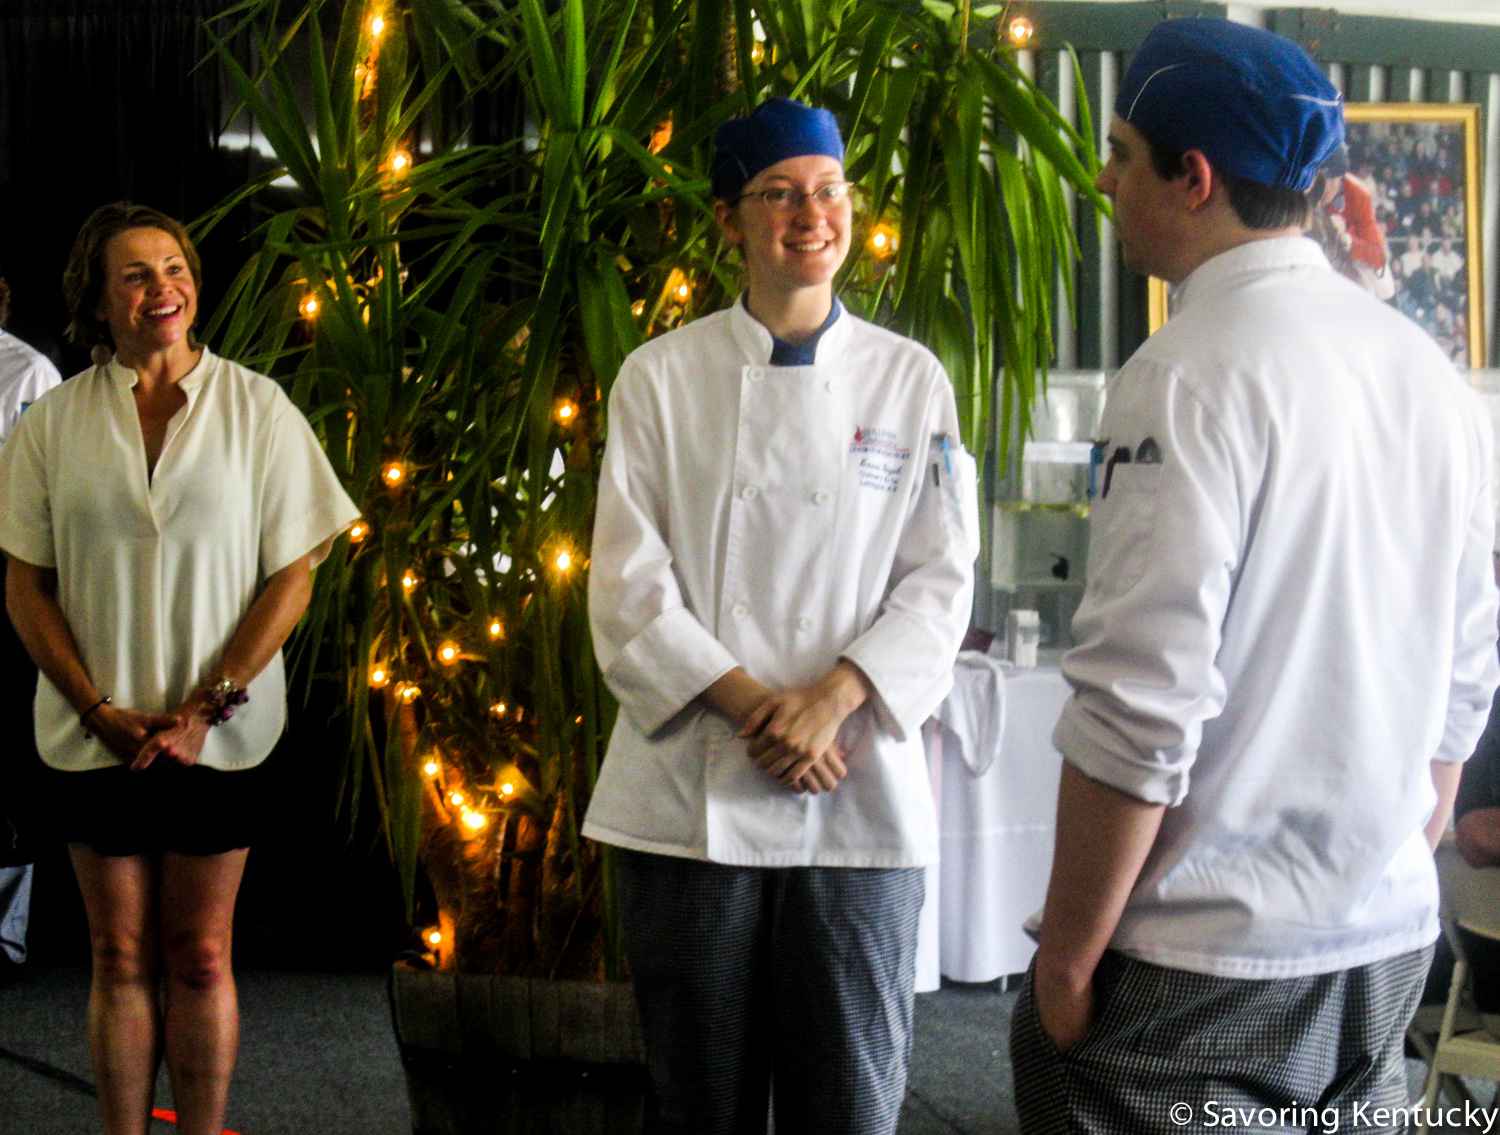 Crave Festival director Robbie Morgan, left, looks on as Sullivan student chefs Laura Vogel and Will Unseld describe their meal opening trio of smoked soups.